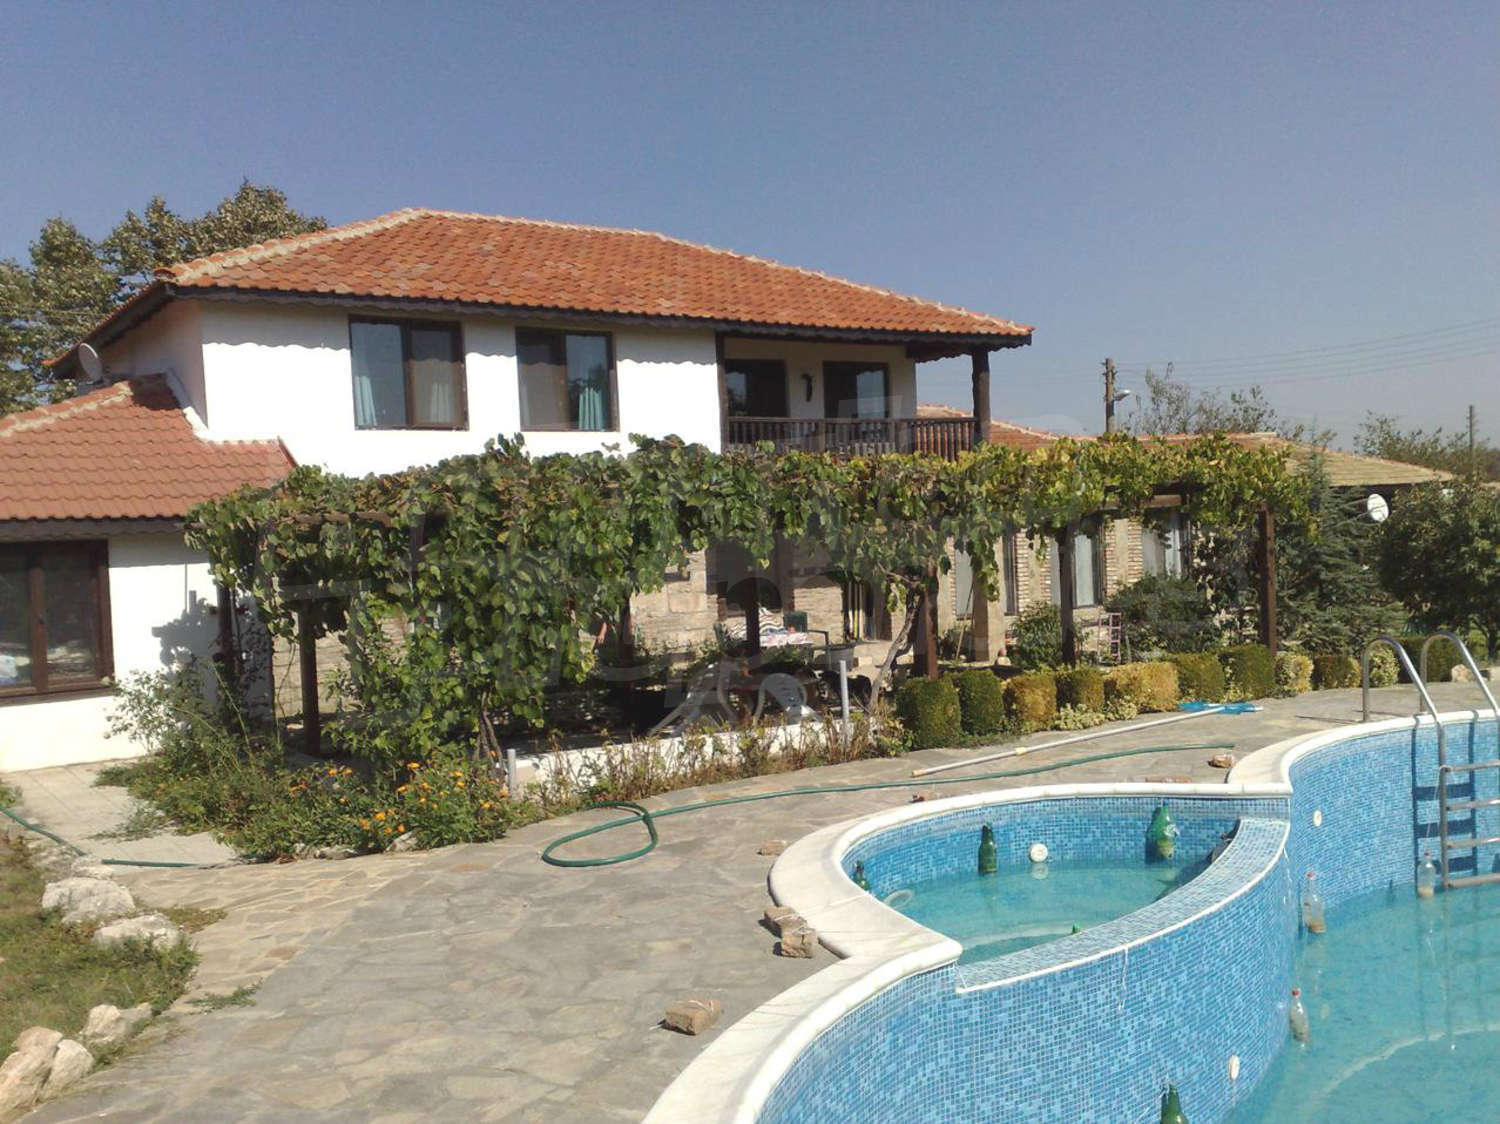 House for sale near varna varna bulgaria big house for Swimming pool close to house